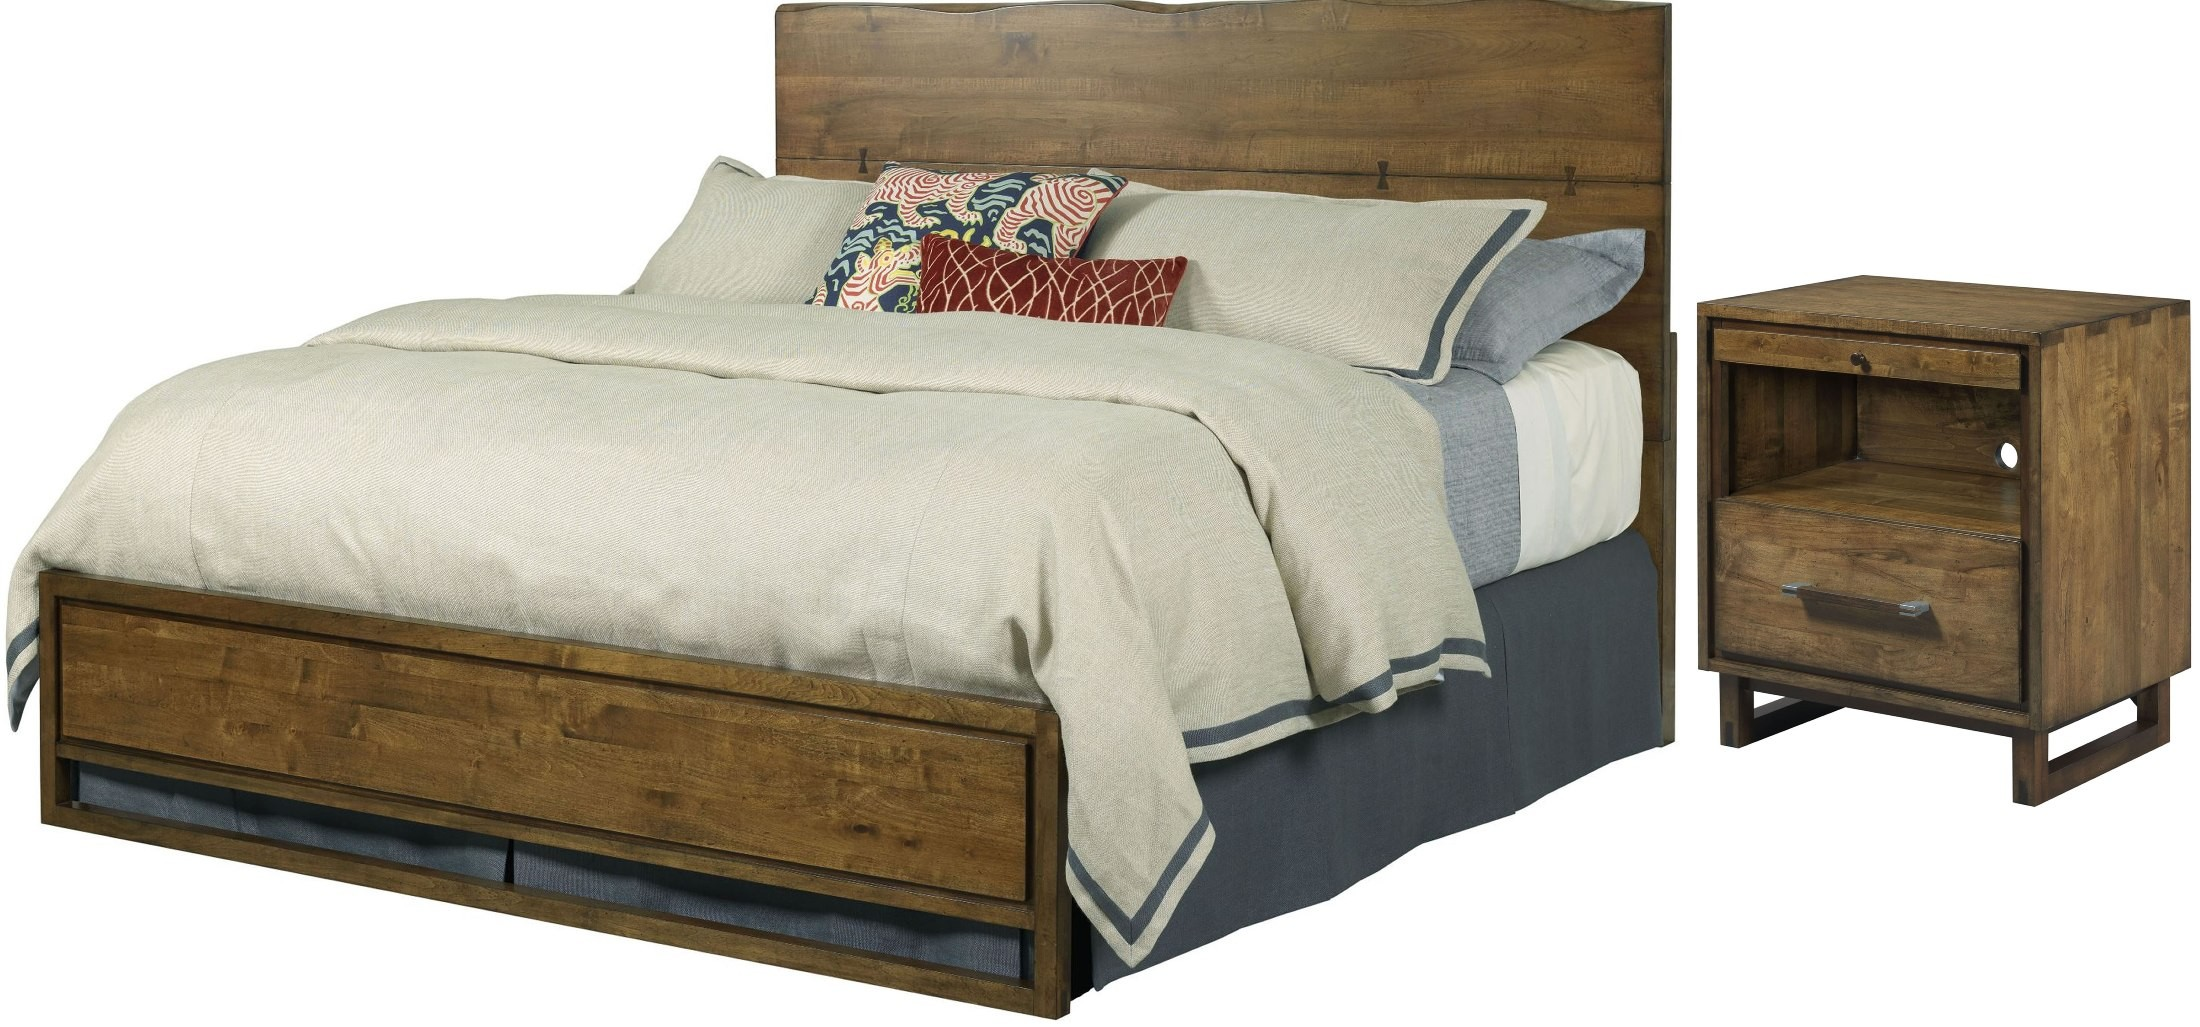 Traverse brown craftsman panel bedroom set from kincaid for Craftsman bed